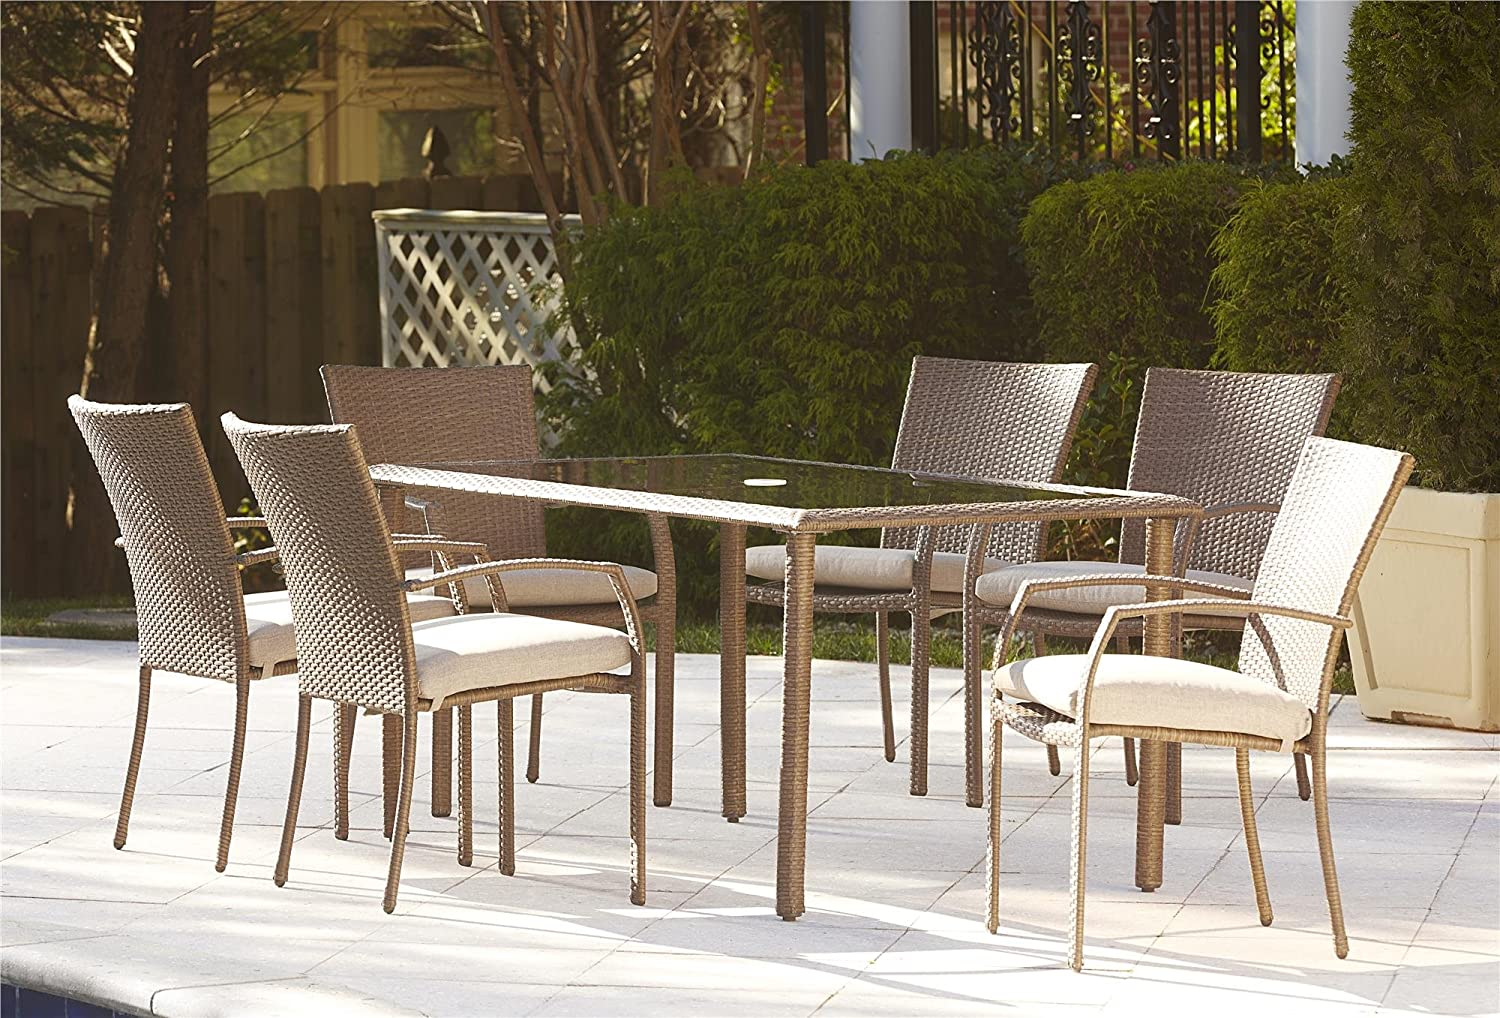 attachment set dining furniture patio sets diabelcissokho minimalist